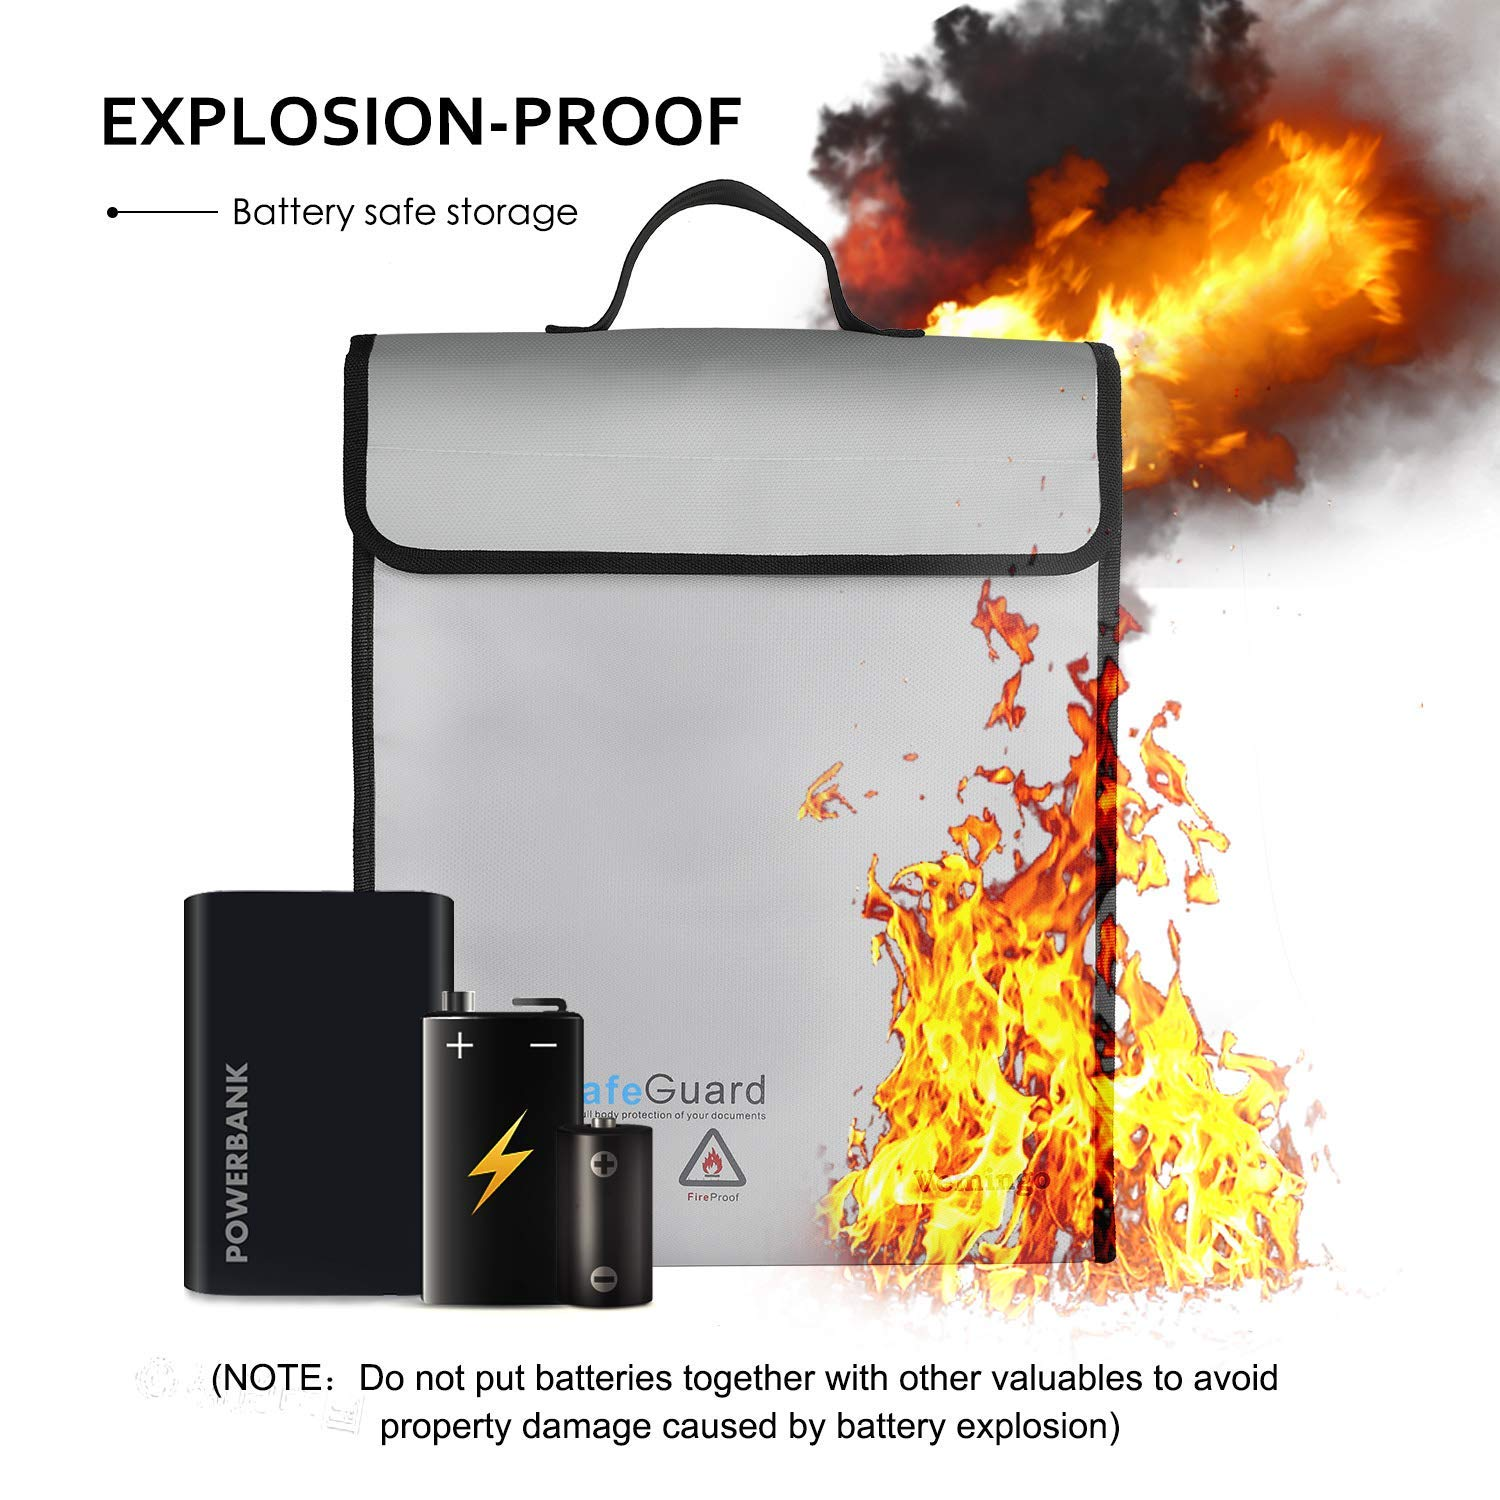 Fire and Water-proof Safe Document Bag Lg // Small Bundle Secure Travel Storage